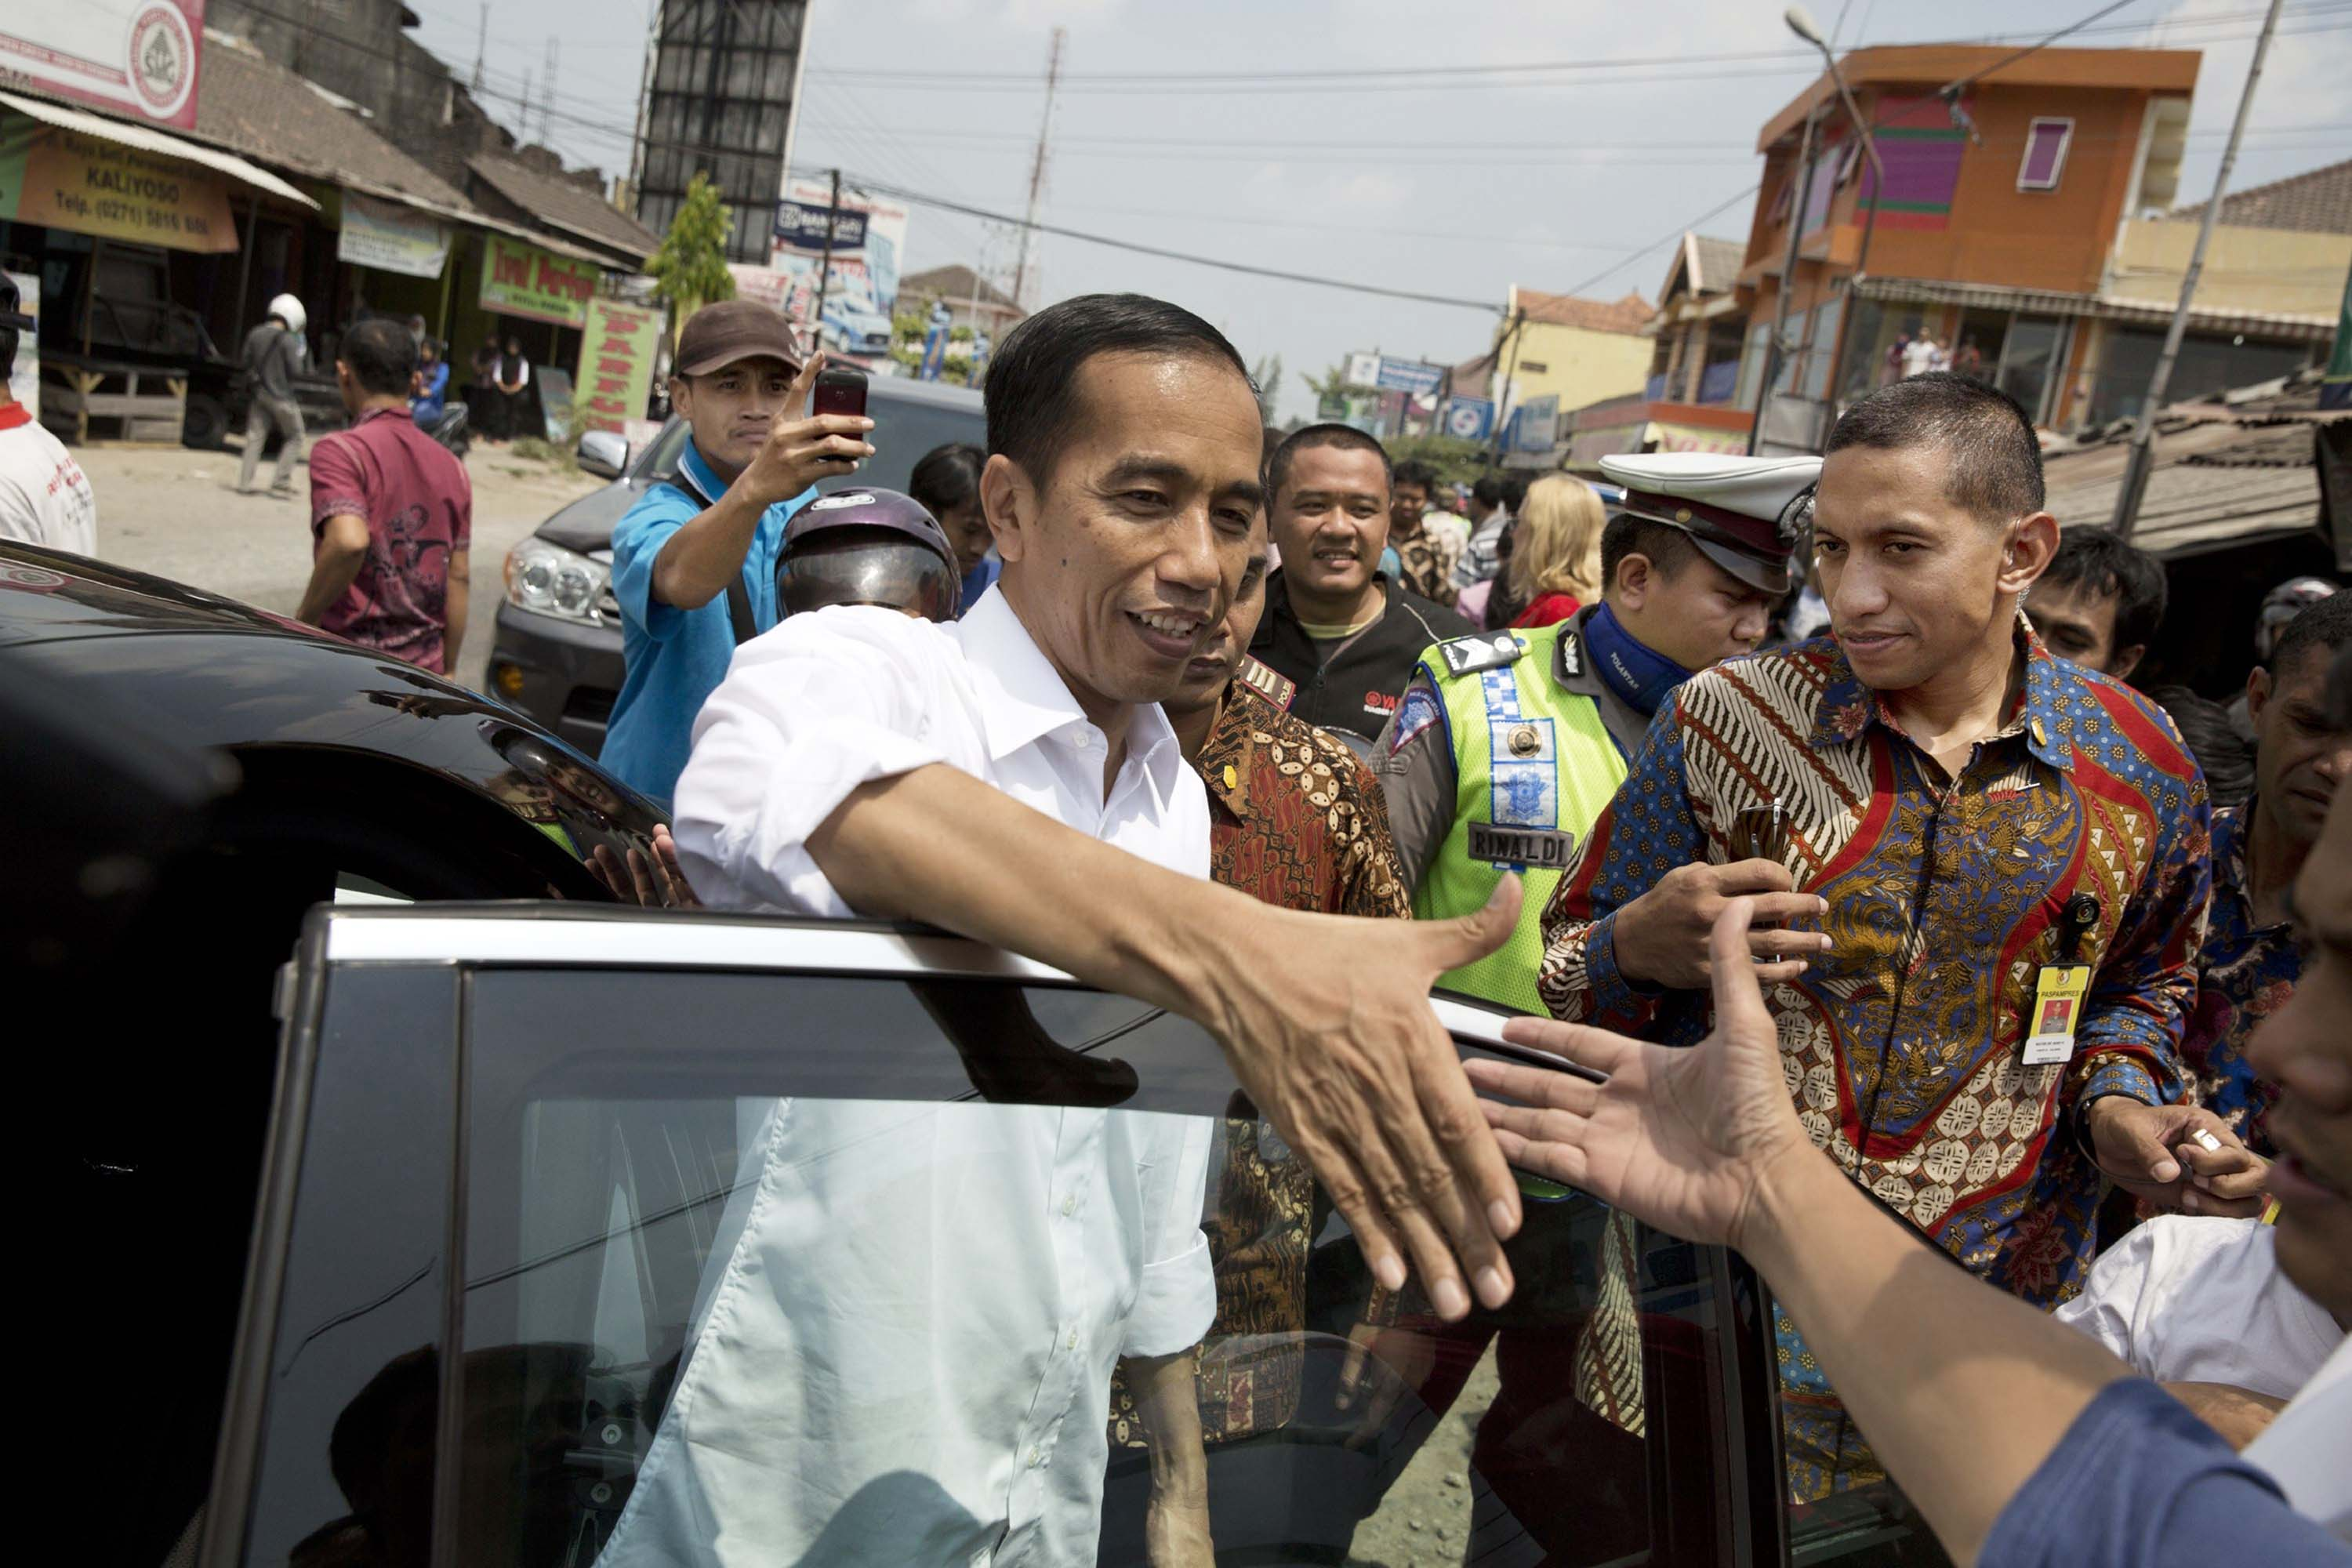 Because of Jokowi's humble roots, many expect him to understand the problems of ordinary citizens